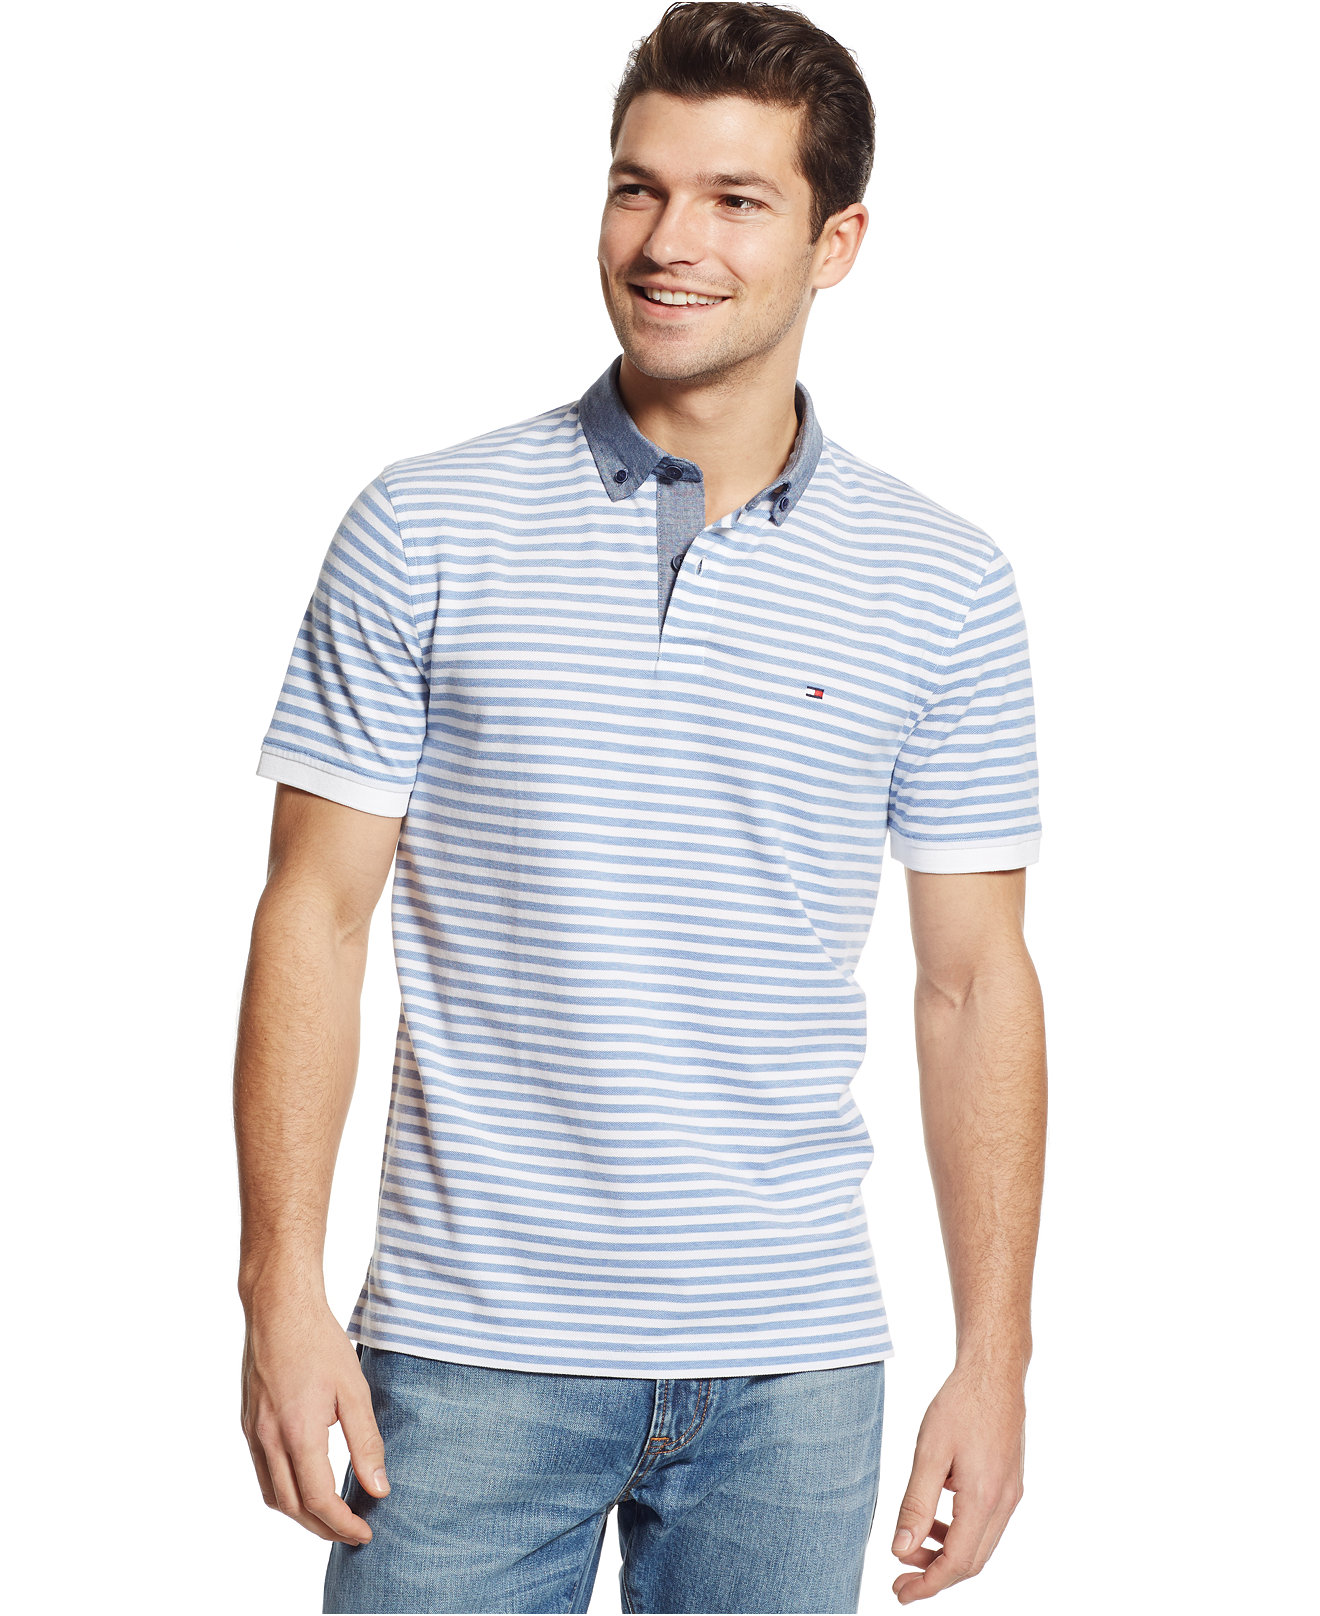 Рубашка поло Tommy hilfiger 2015 Tommy Polo рубашка tommy hilfiger mw0mw03105 902 bright white royal blue